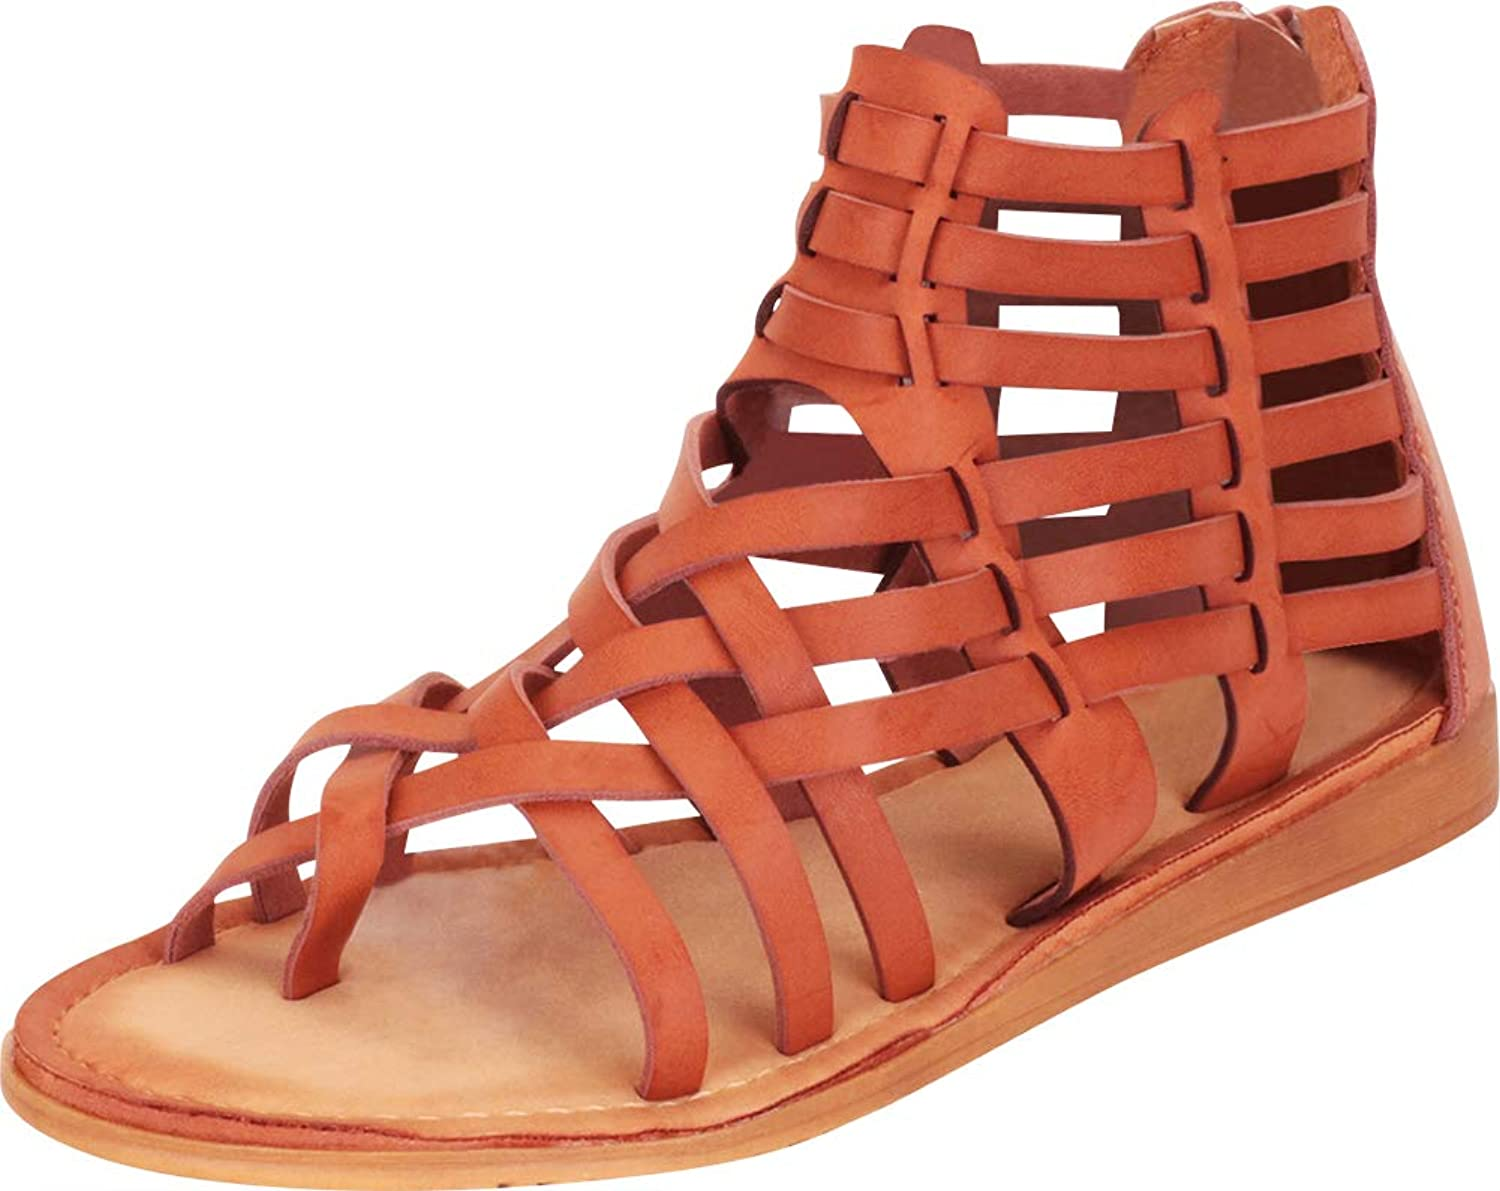 Cambridge Select Women's Thong Toe Caged Strappy Cutout Ankle Gladiatior Sandal